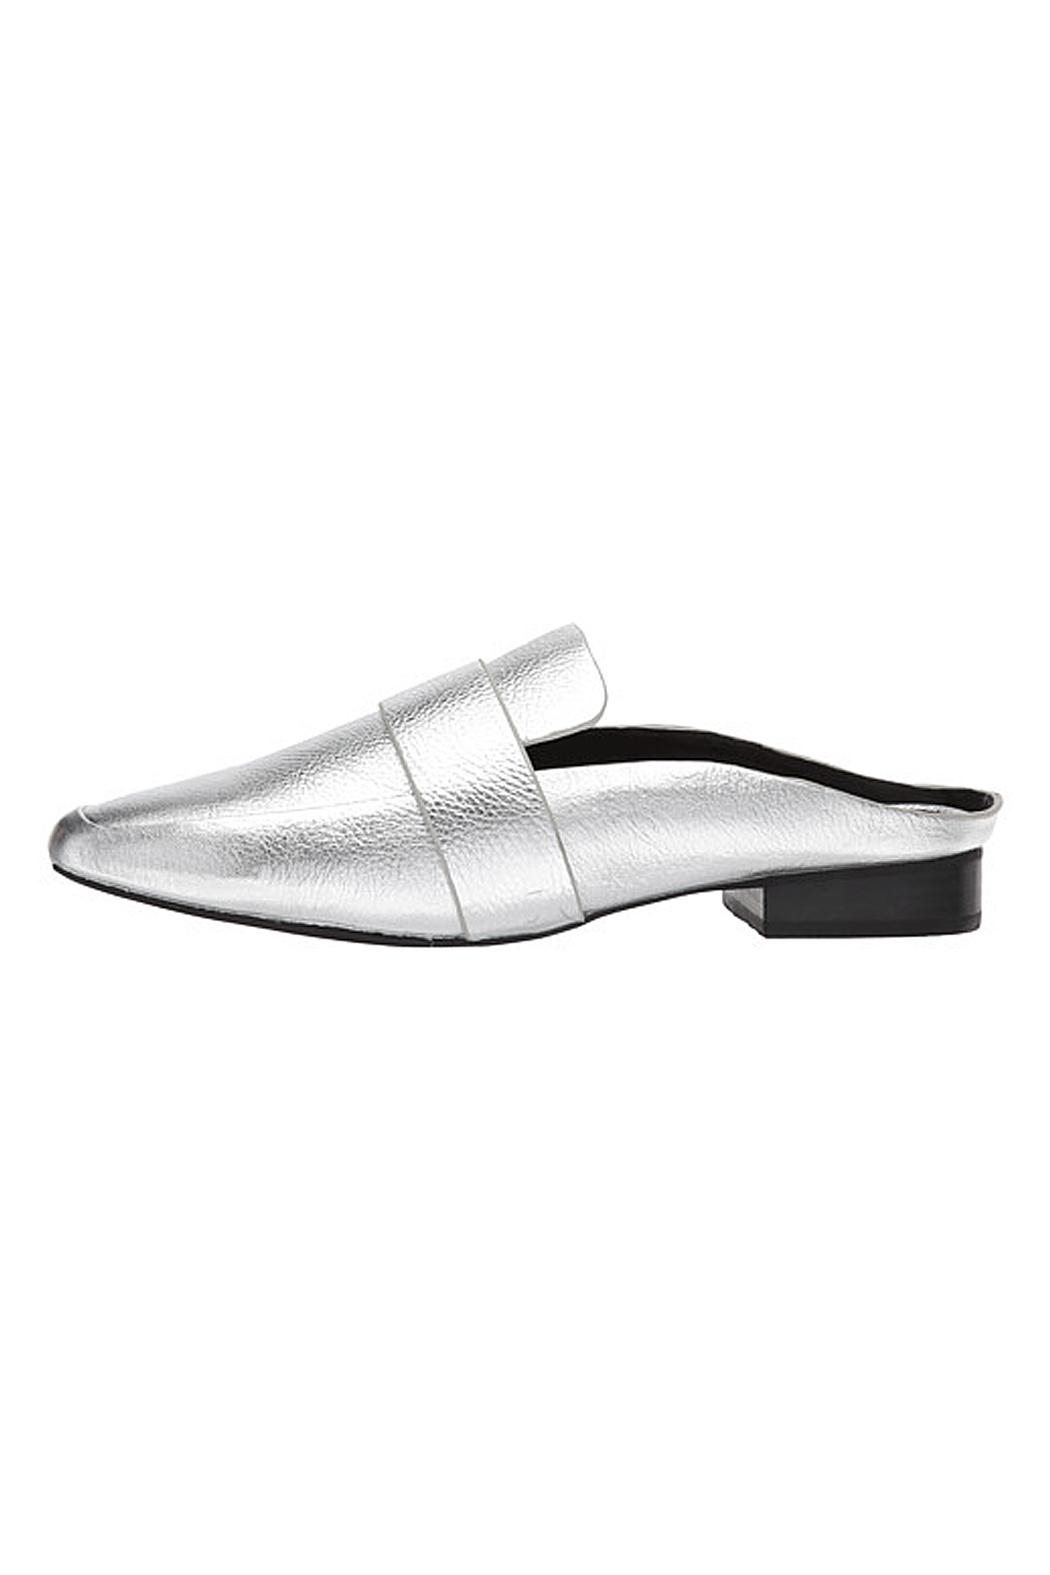 SOLSANA Renold Leather Mule Shoes - Main Image